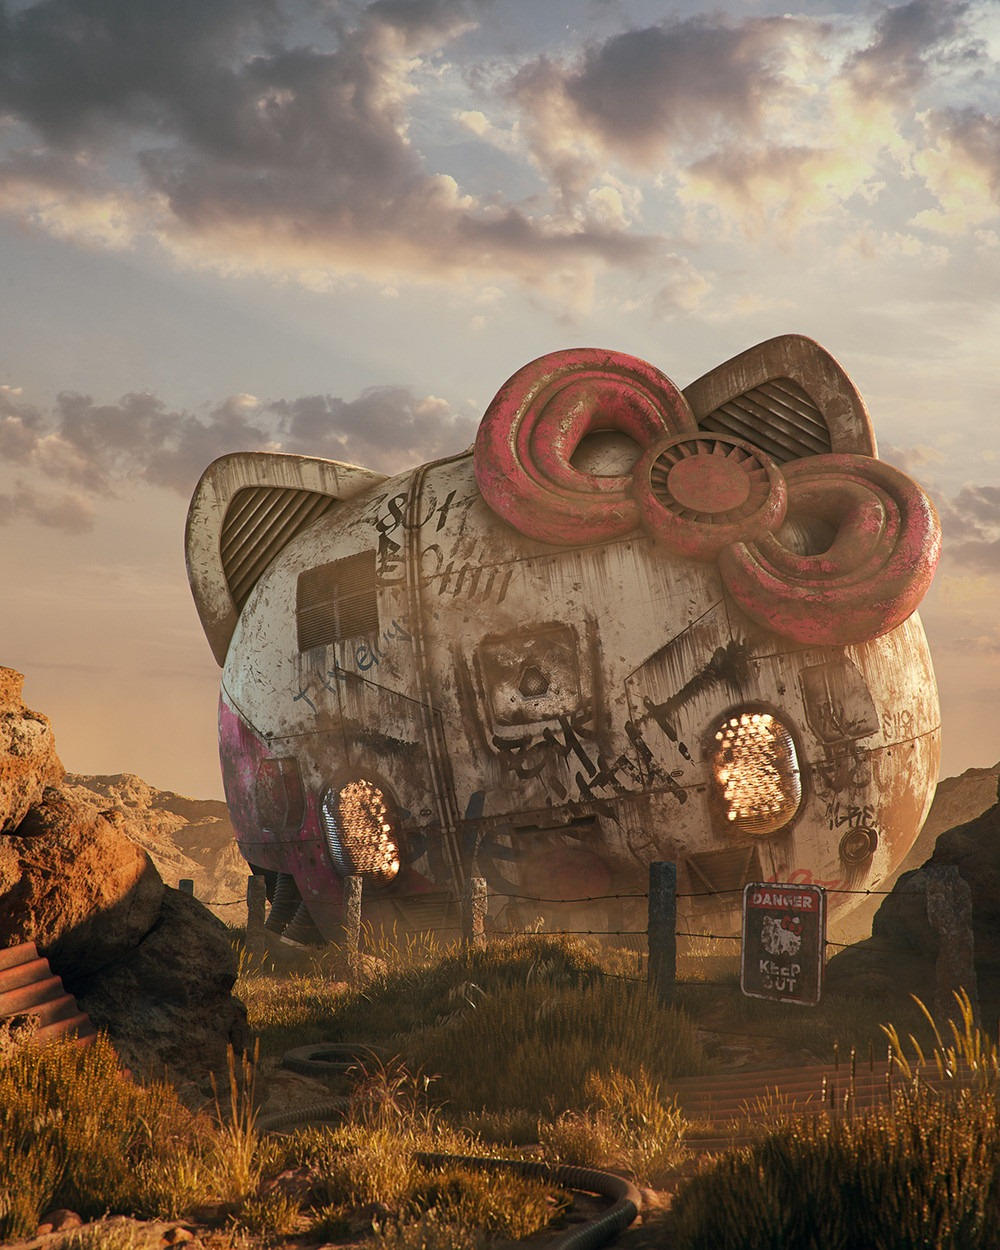 Hello Kitty Pop Culture Dystopia Filip Hodas